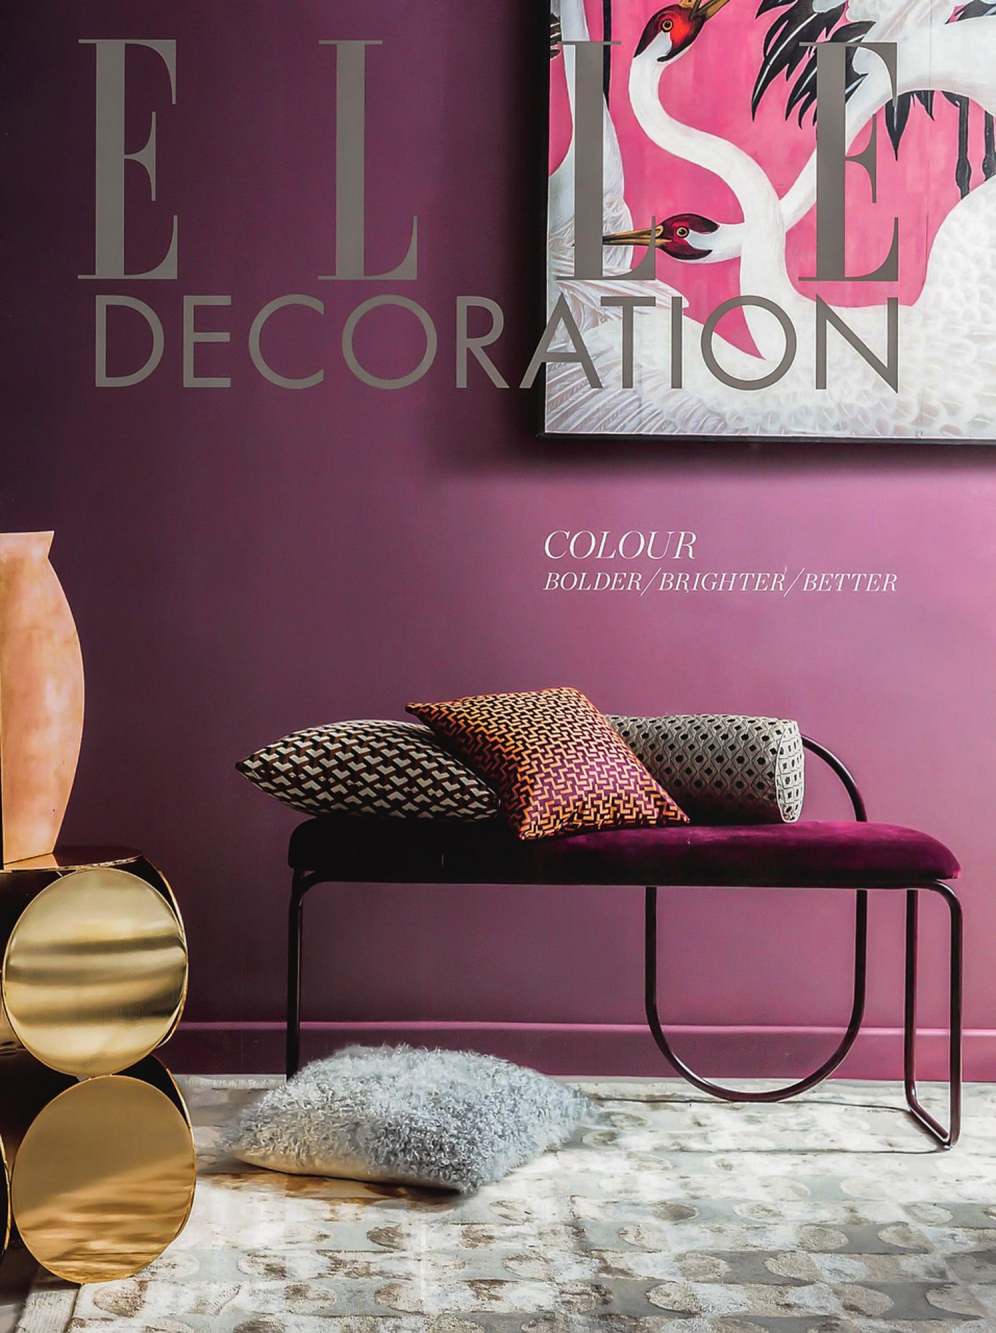 Elle Decoration | The New Summer of Love